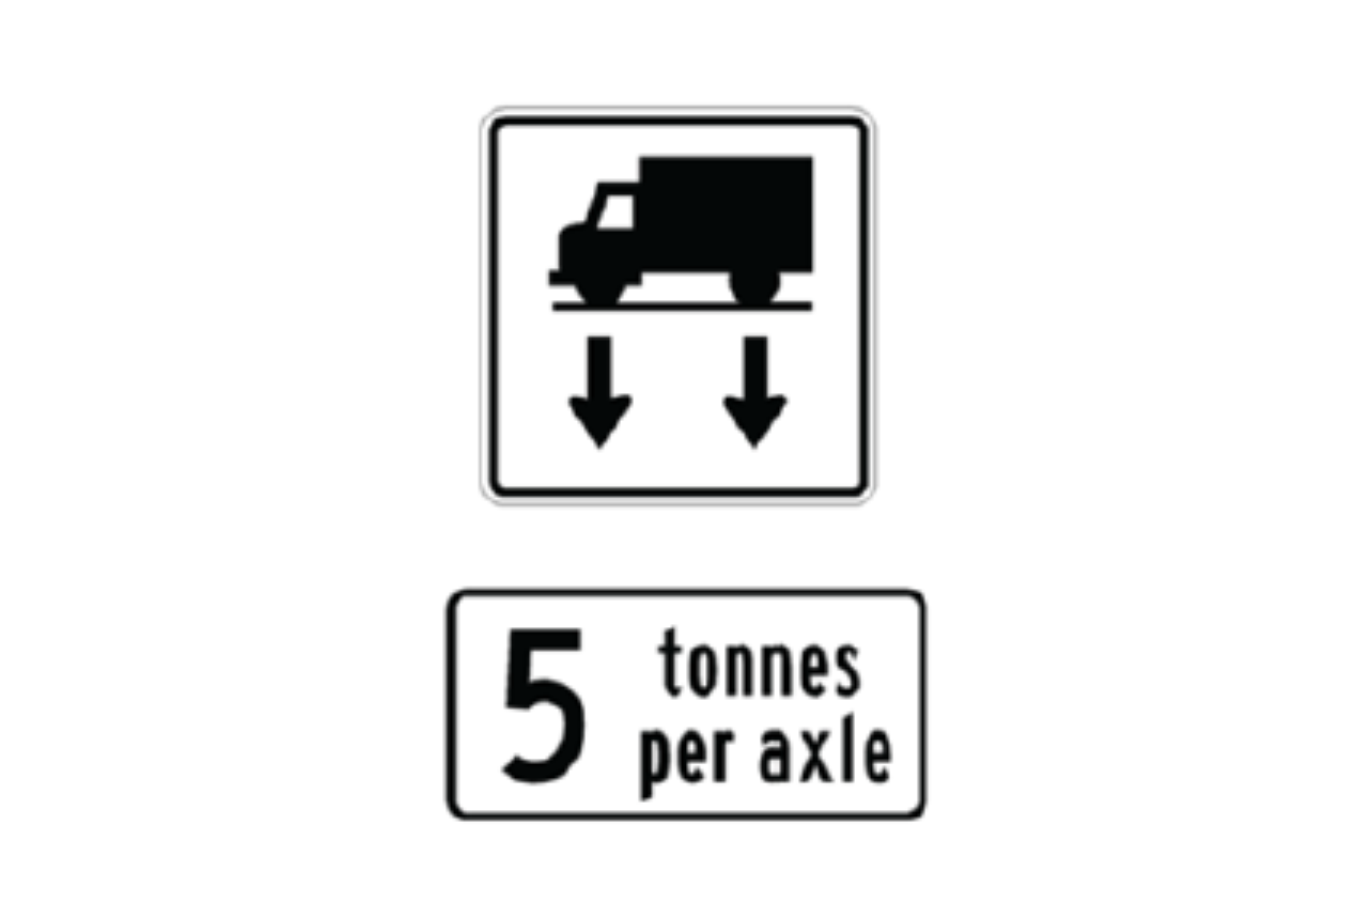 5 tonnes per axle sign